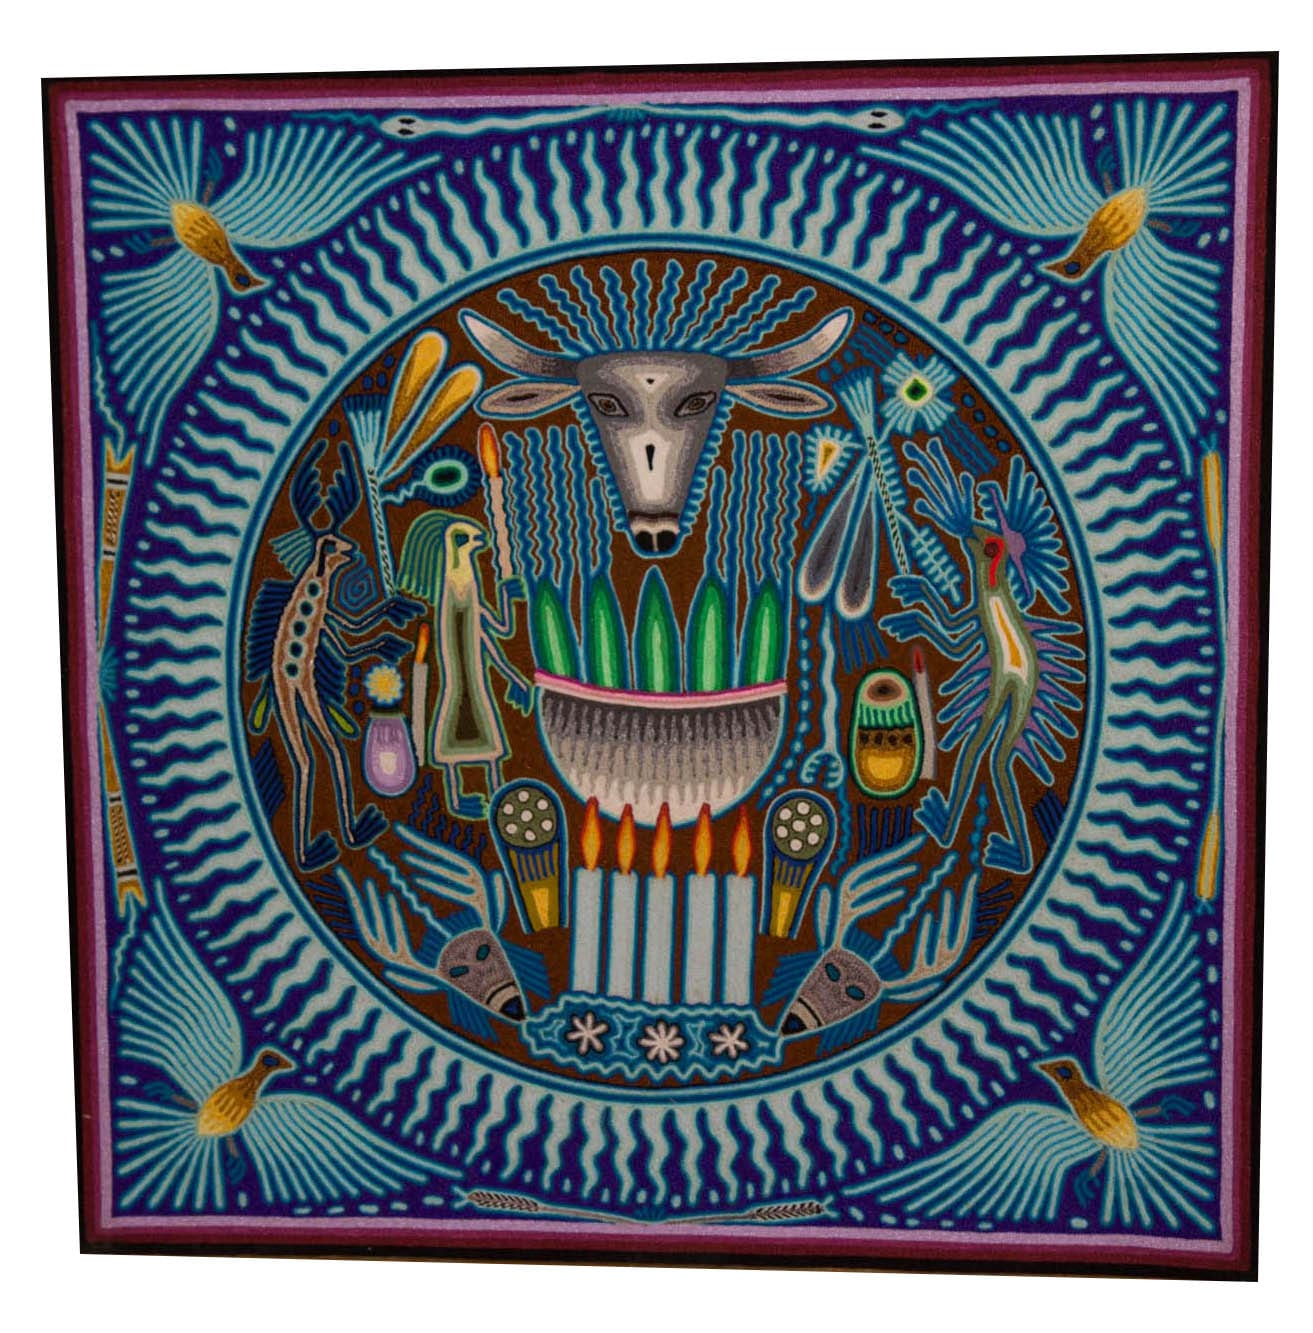 Stunning traditional Huichol art yarn painting featuring nature motifs in blue. Buy fair trade Mexican textiles & support local Huicol communities.